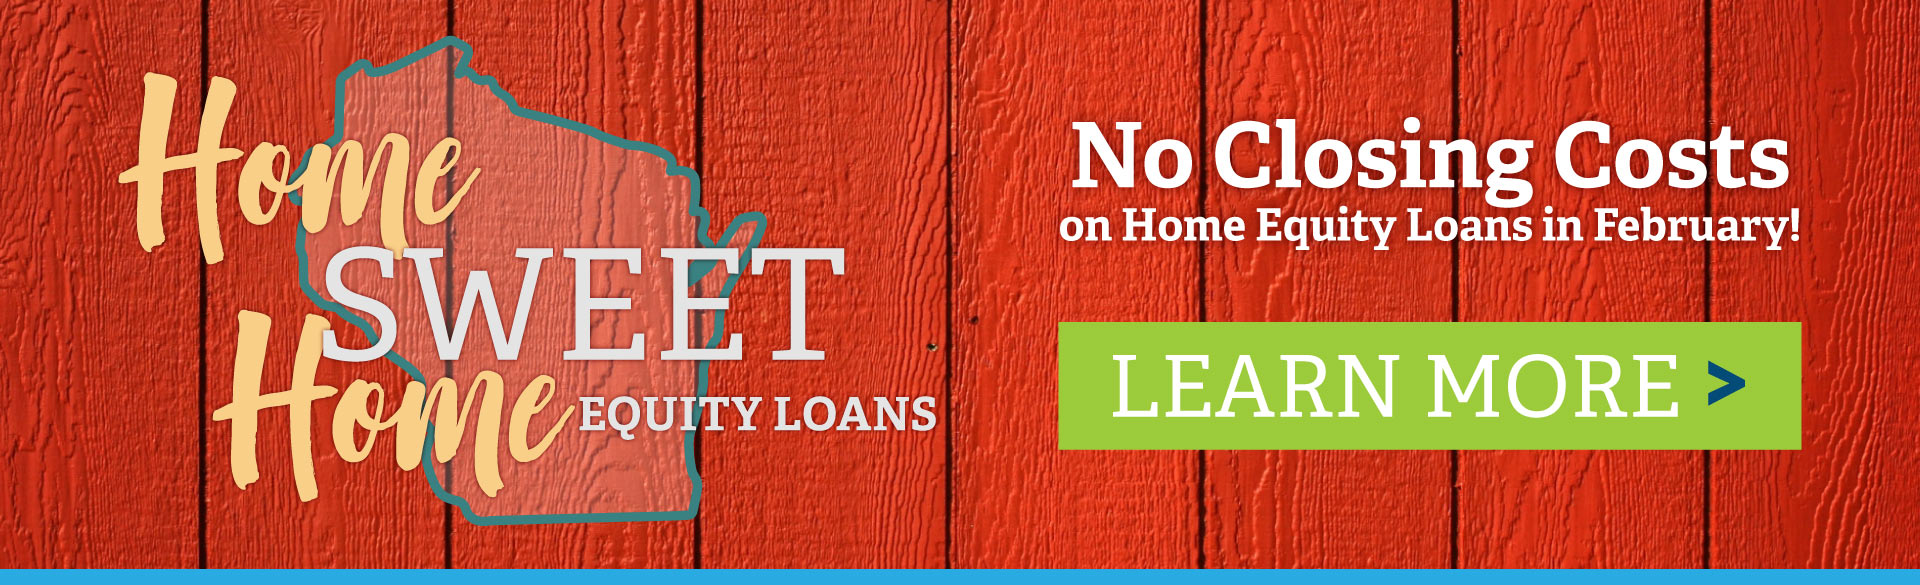 Home Sweet Home Equity Loan Banner